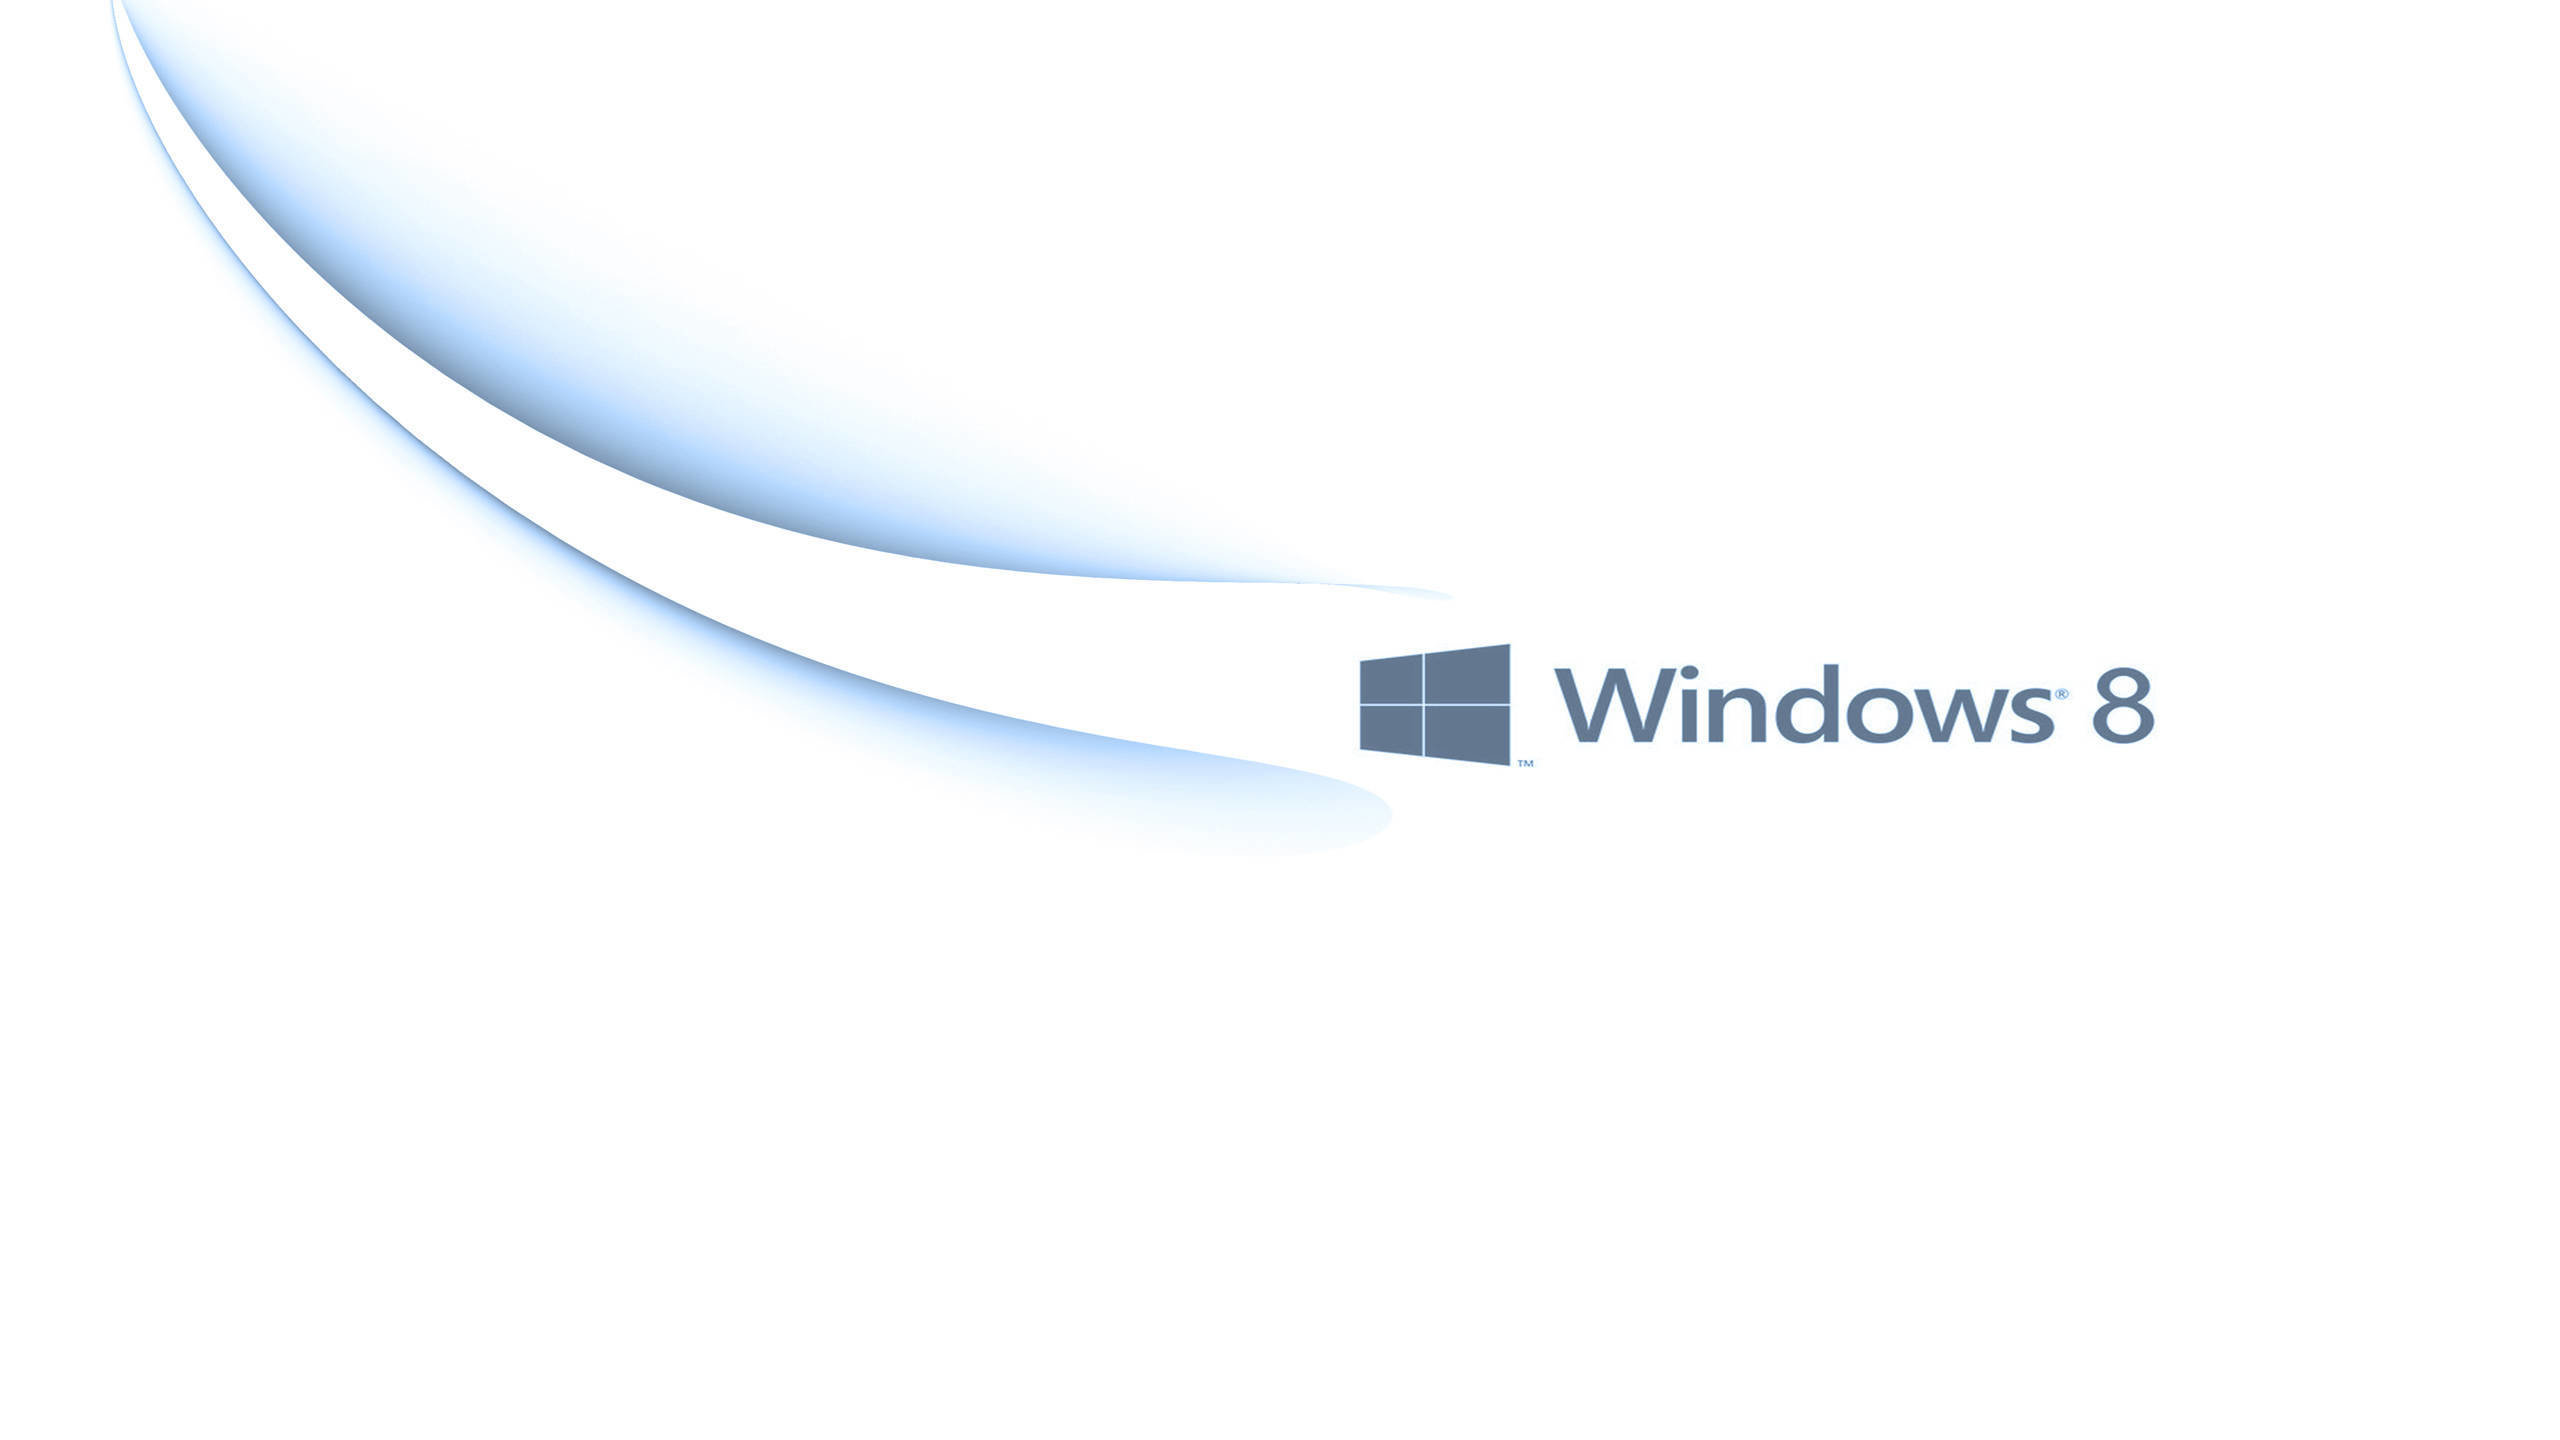 High resolution Windows 8 hd 2560x1440 background ID:78223 for desktop